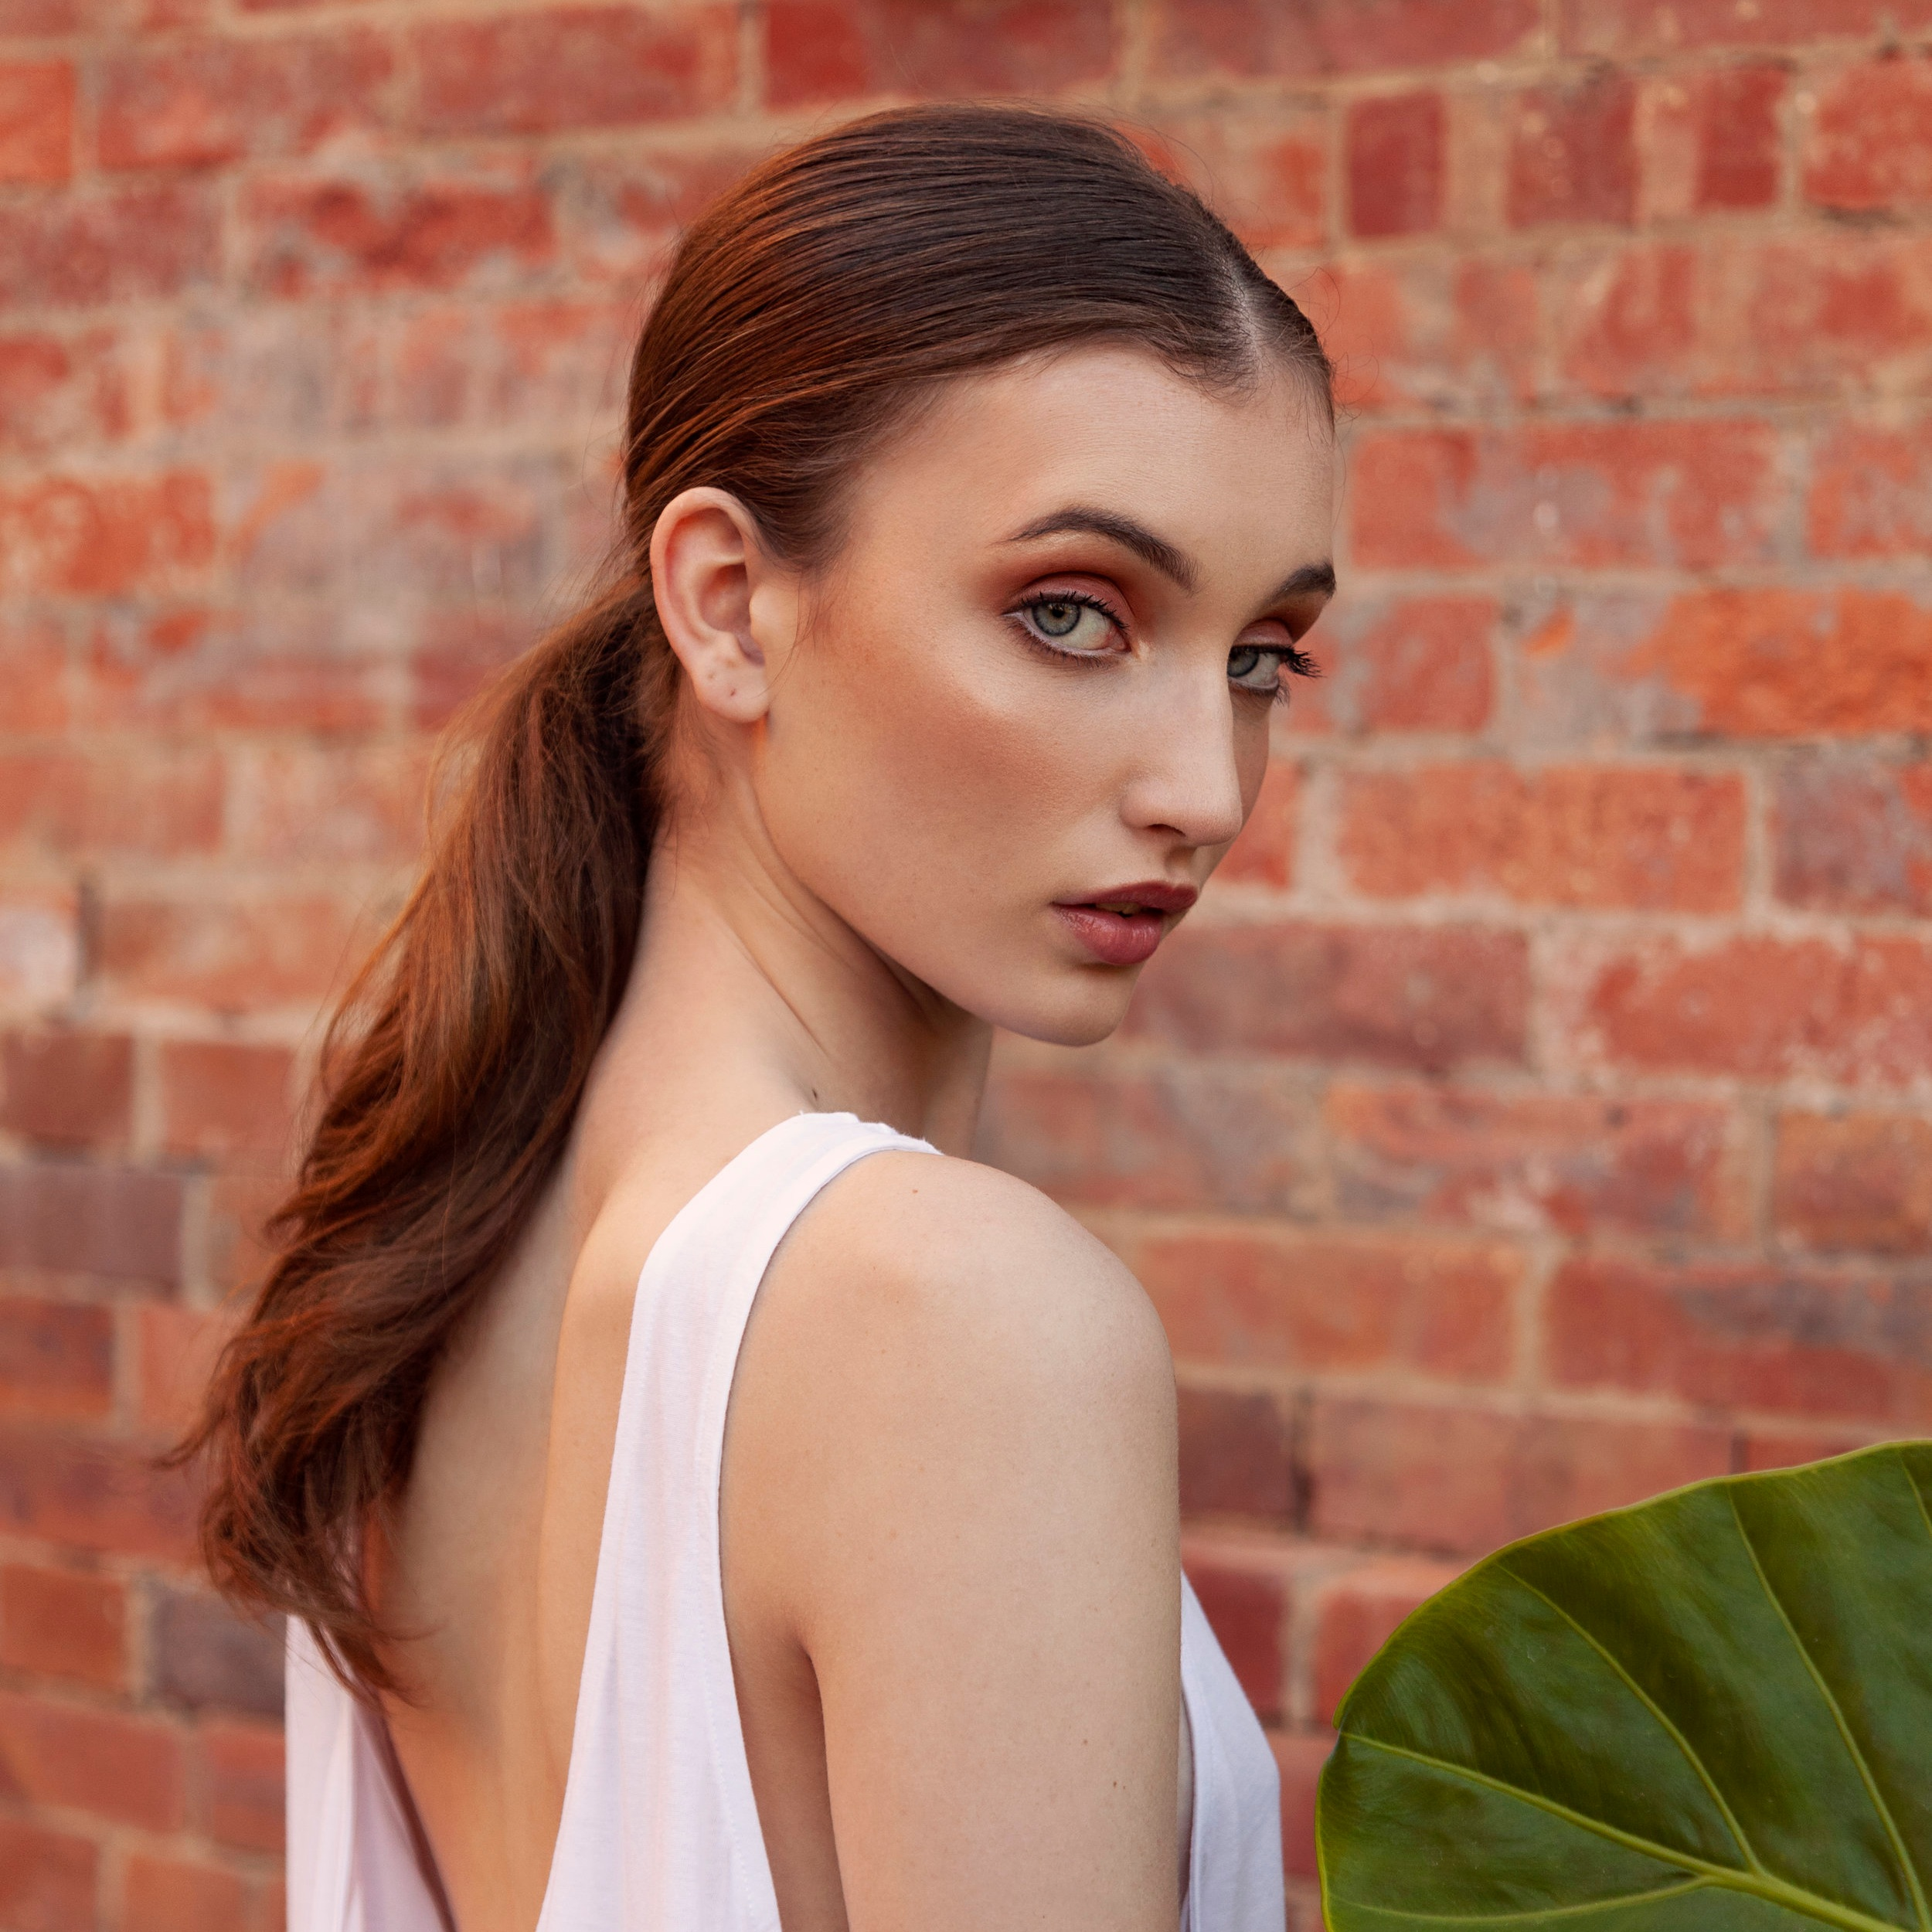 25 OCTOBER, 5:30PM   QUEEN STREET MALL PARADES, SLOW FASHION RUNWAY SHOW